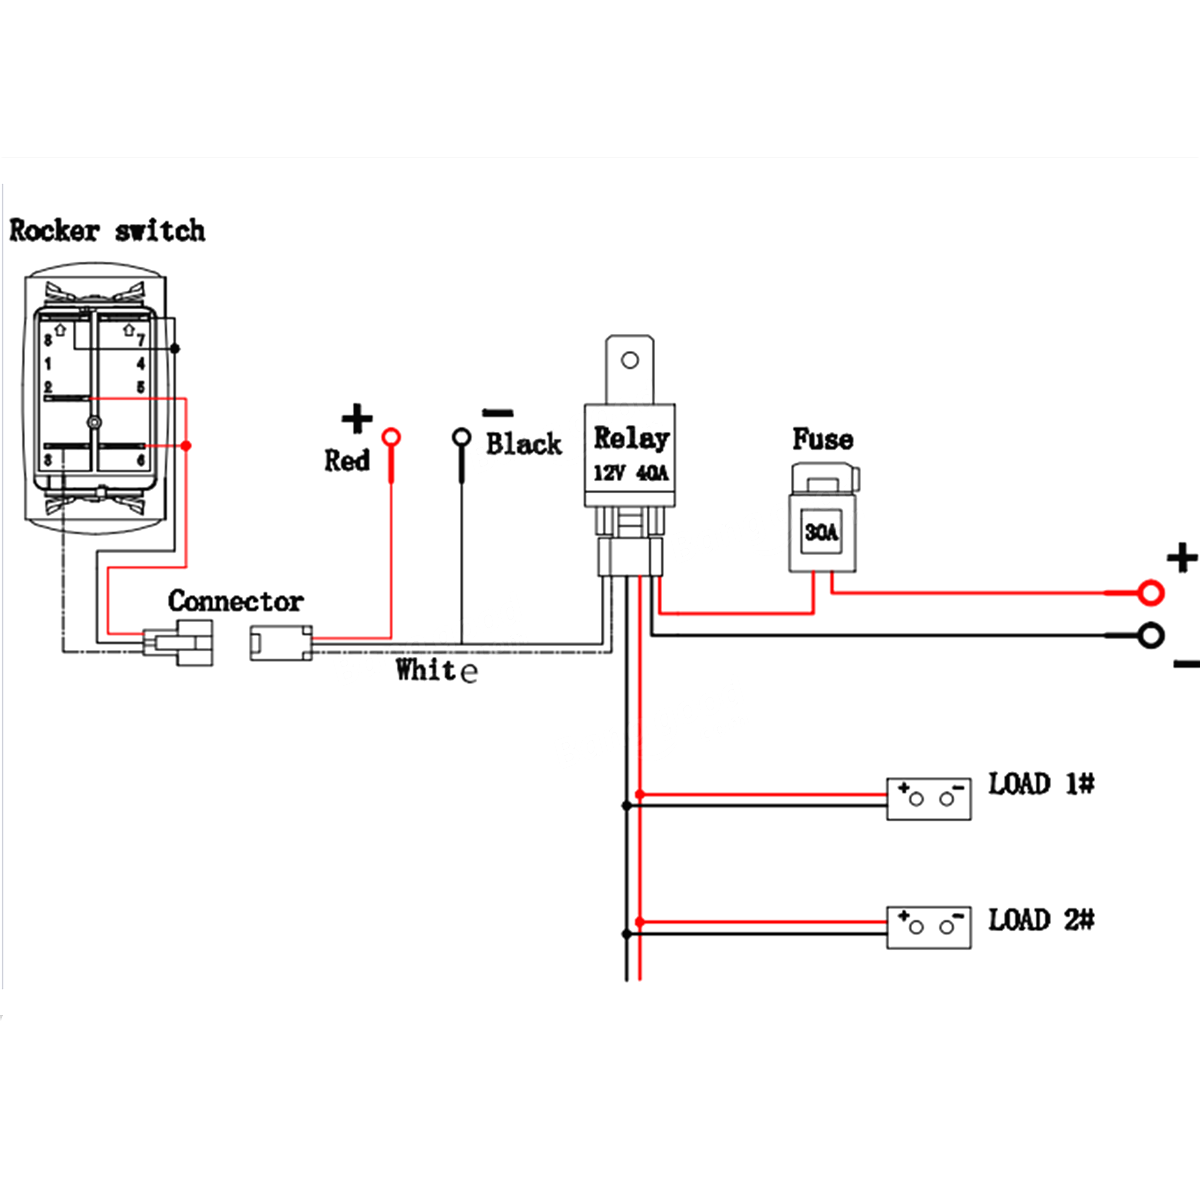 hight resolution of 12v 40a led fog light wiring harness laser rocker switch relay picturesque led diagram